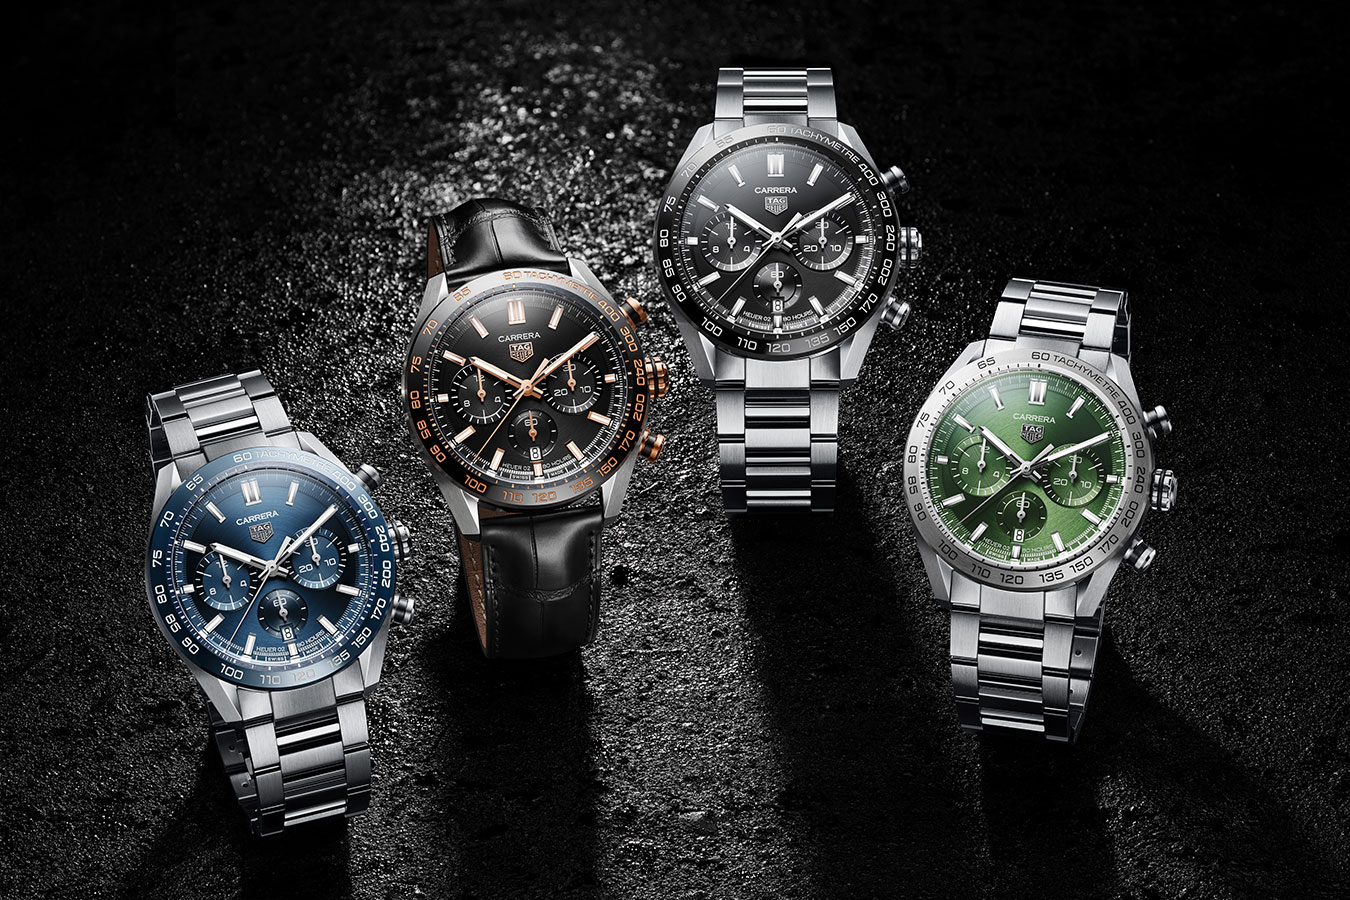 TAG HEUER SUMMER VIBES キャンペーン